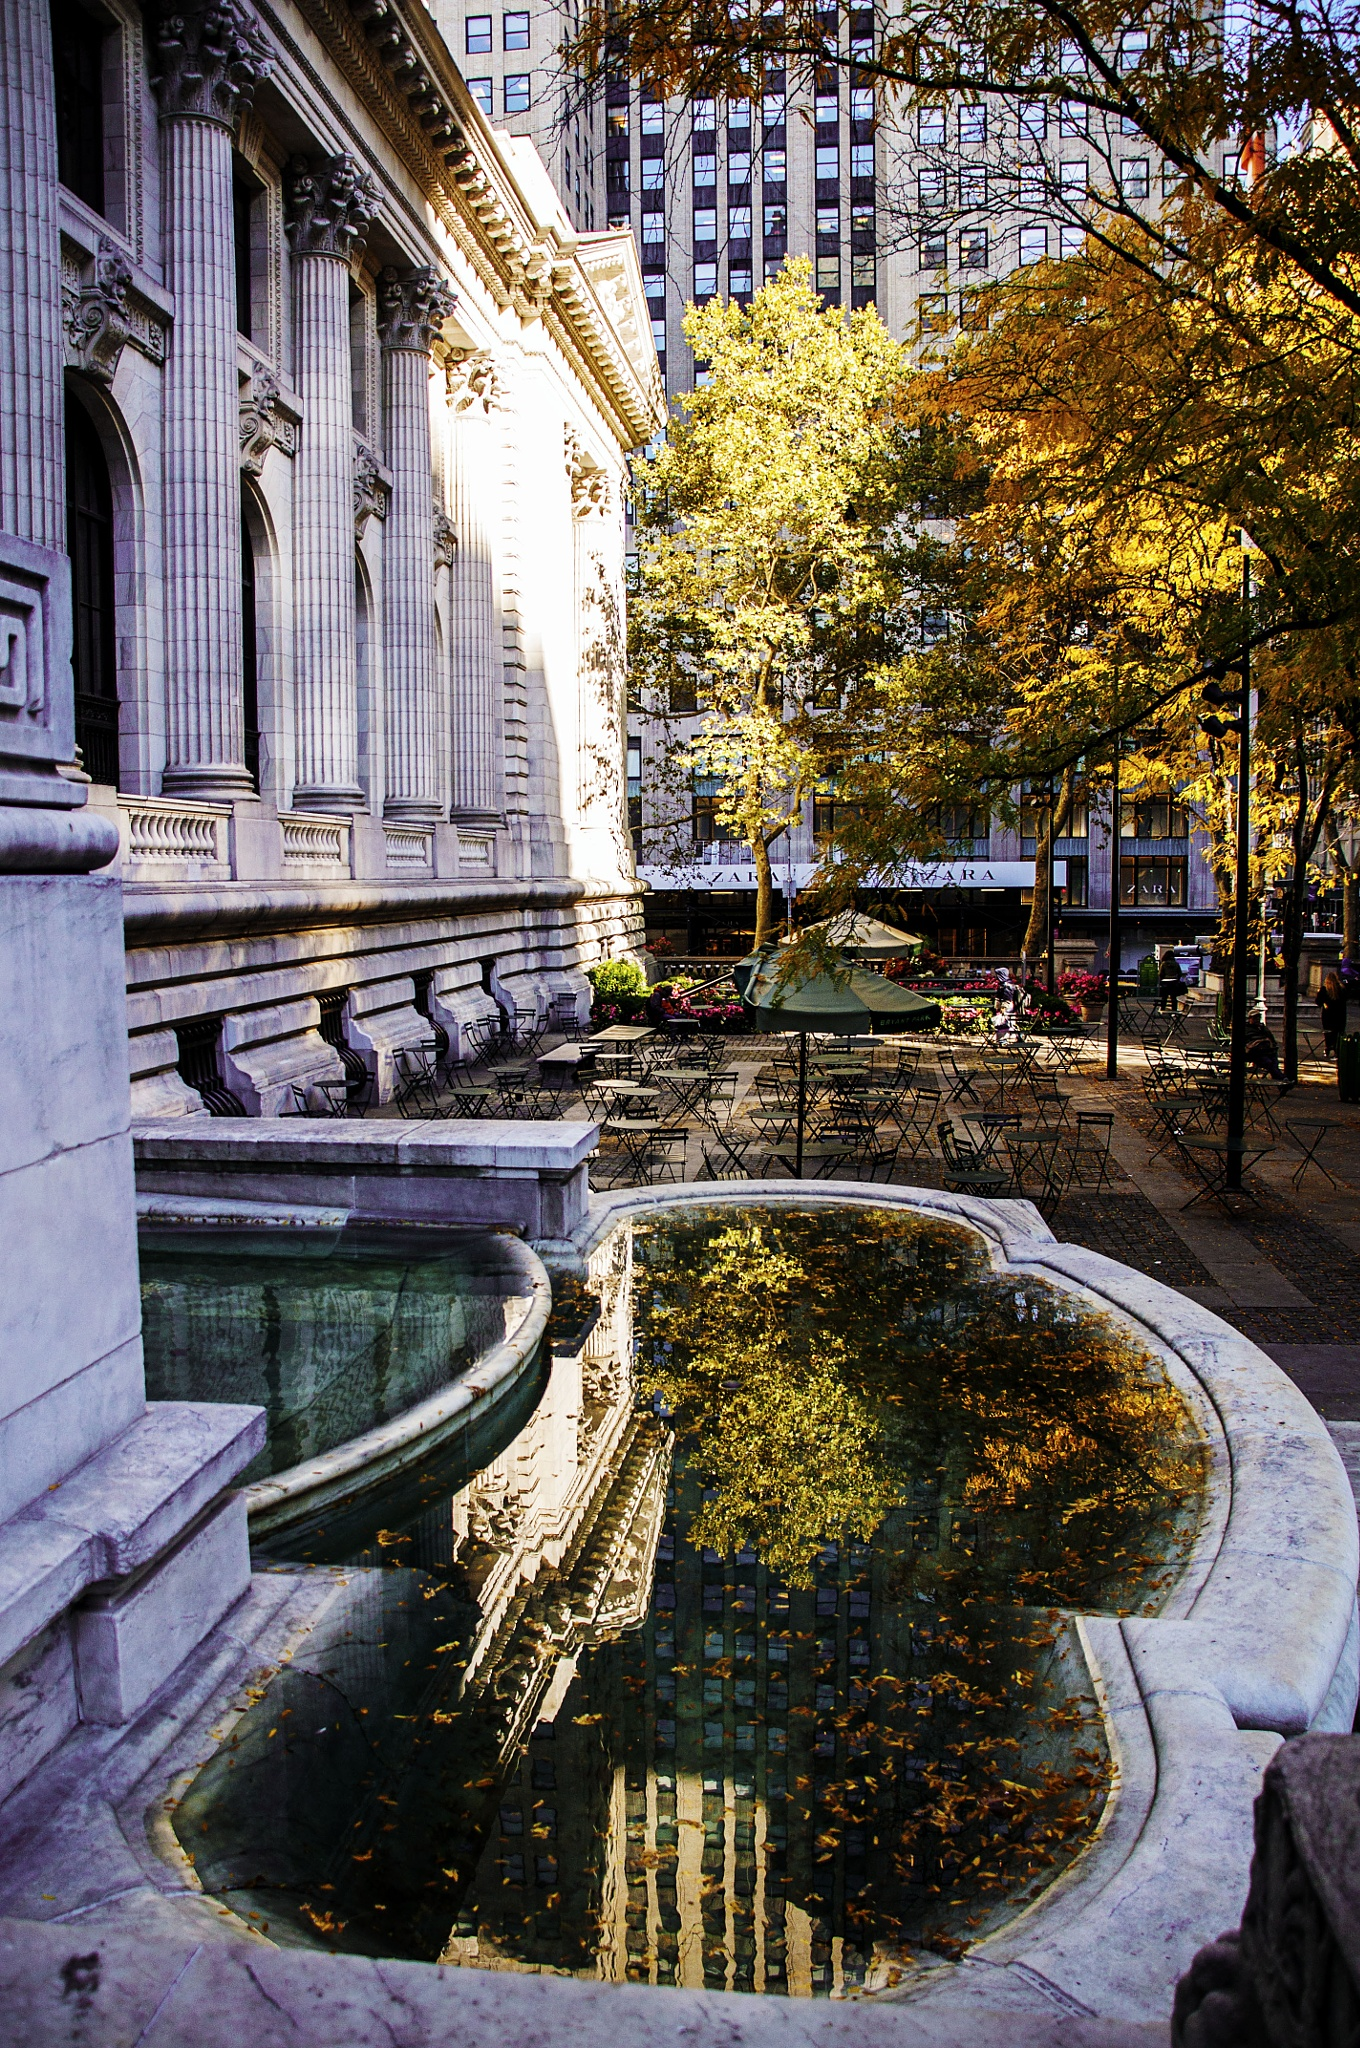 NYC Public Library by Jacqueline Rose